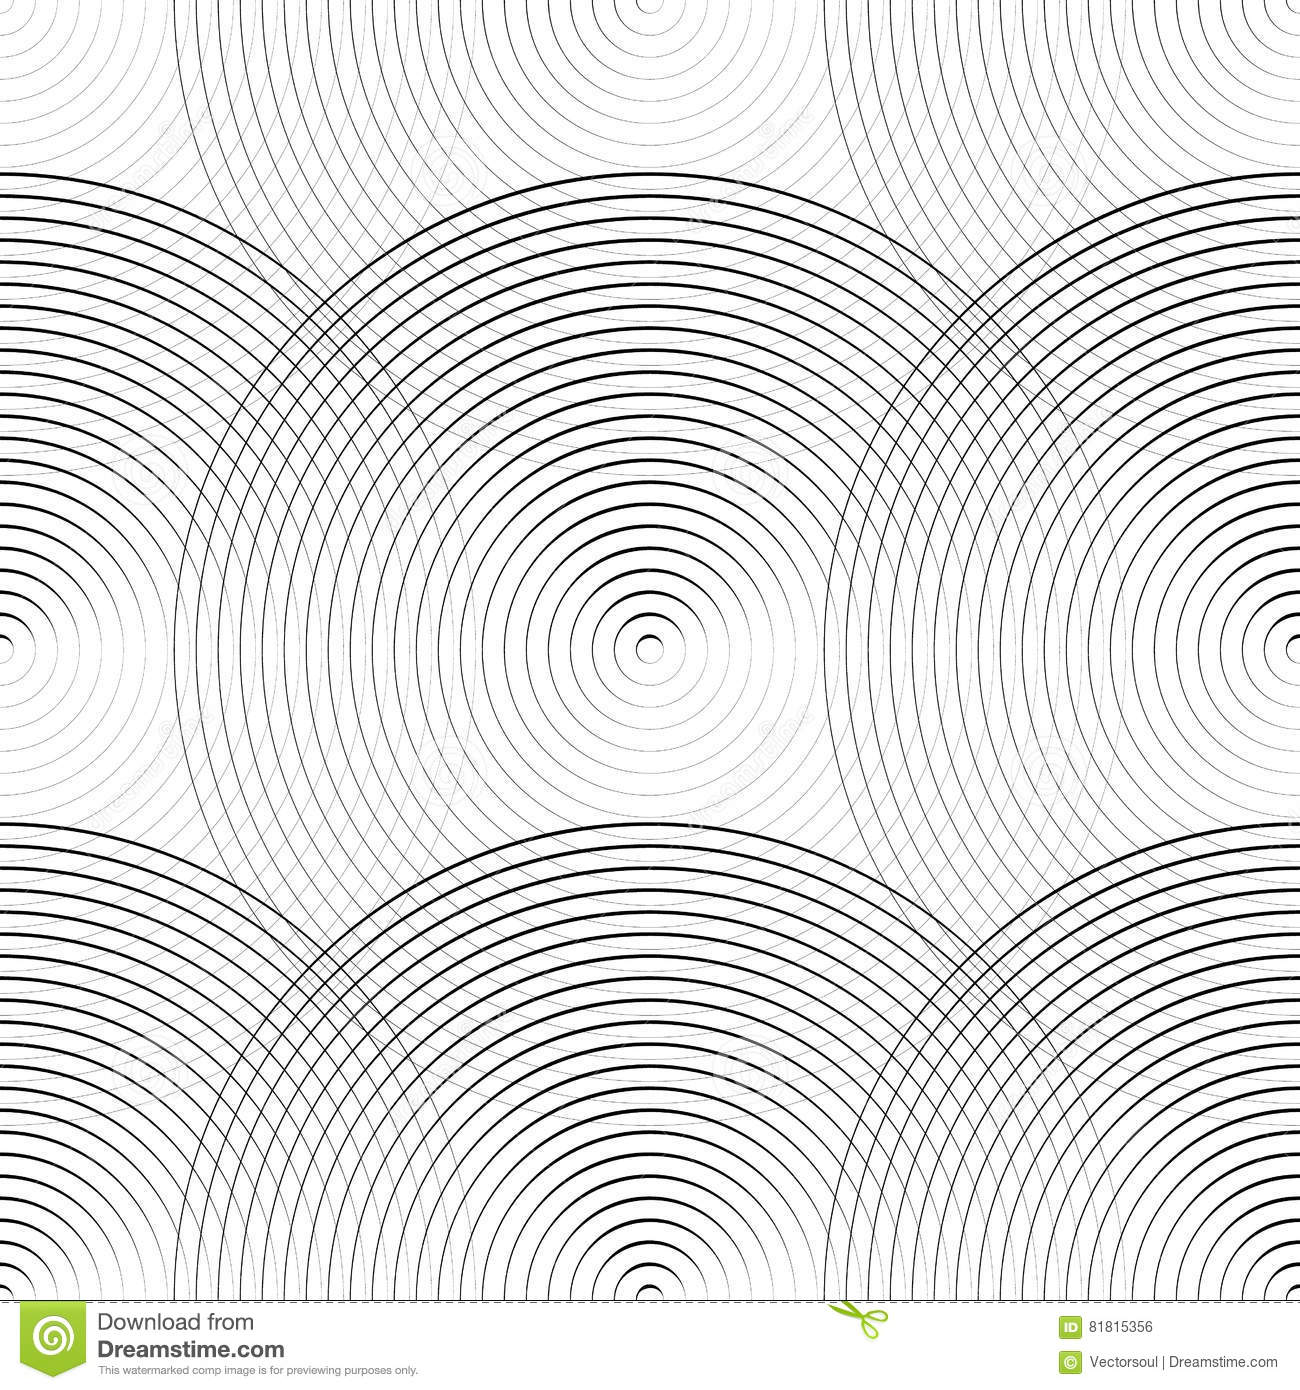 Concentric circles seamless monochrome pattern. Abstract geometry background